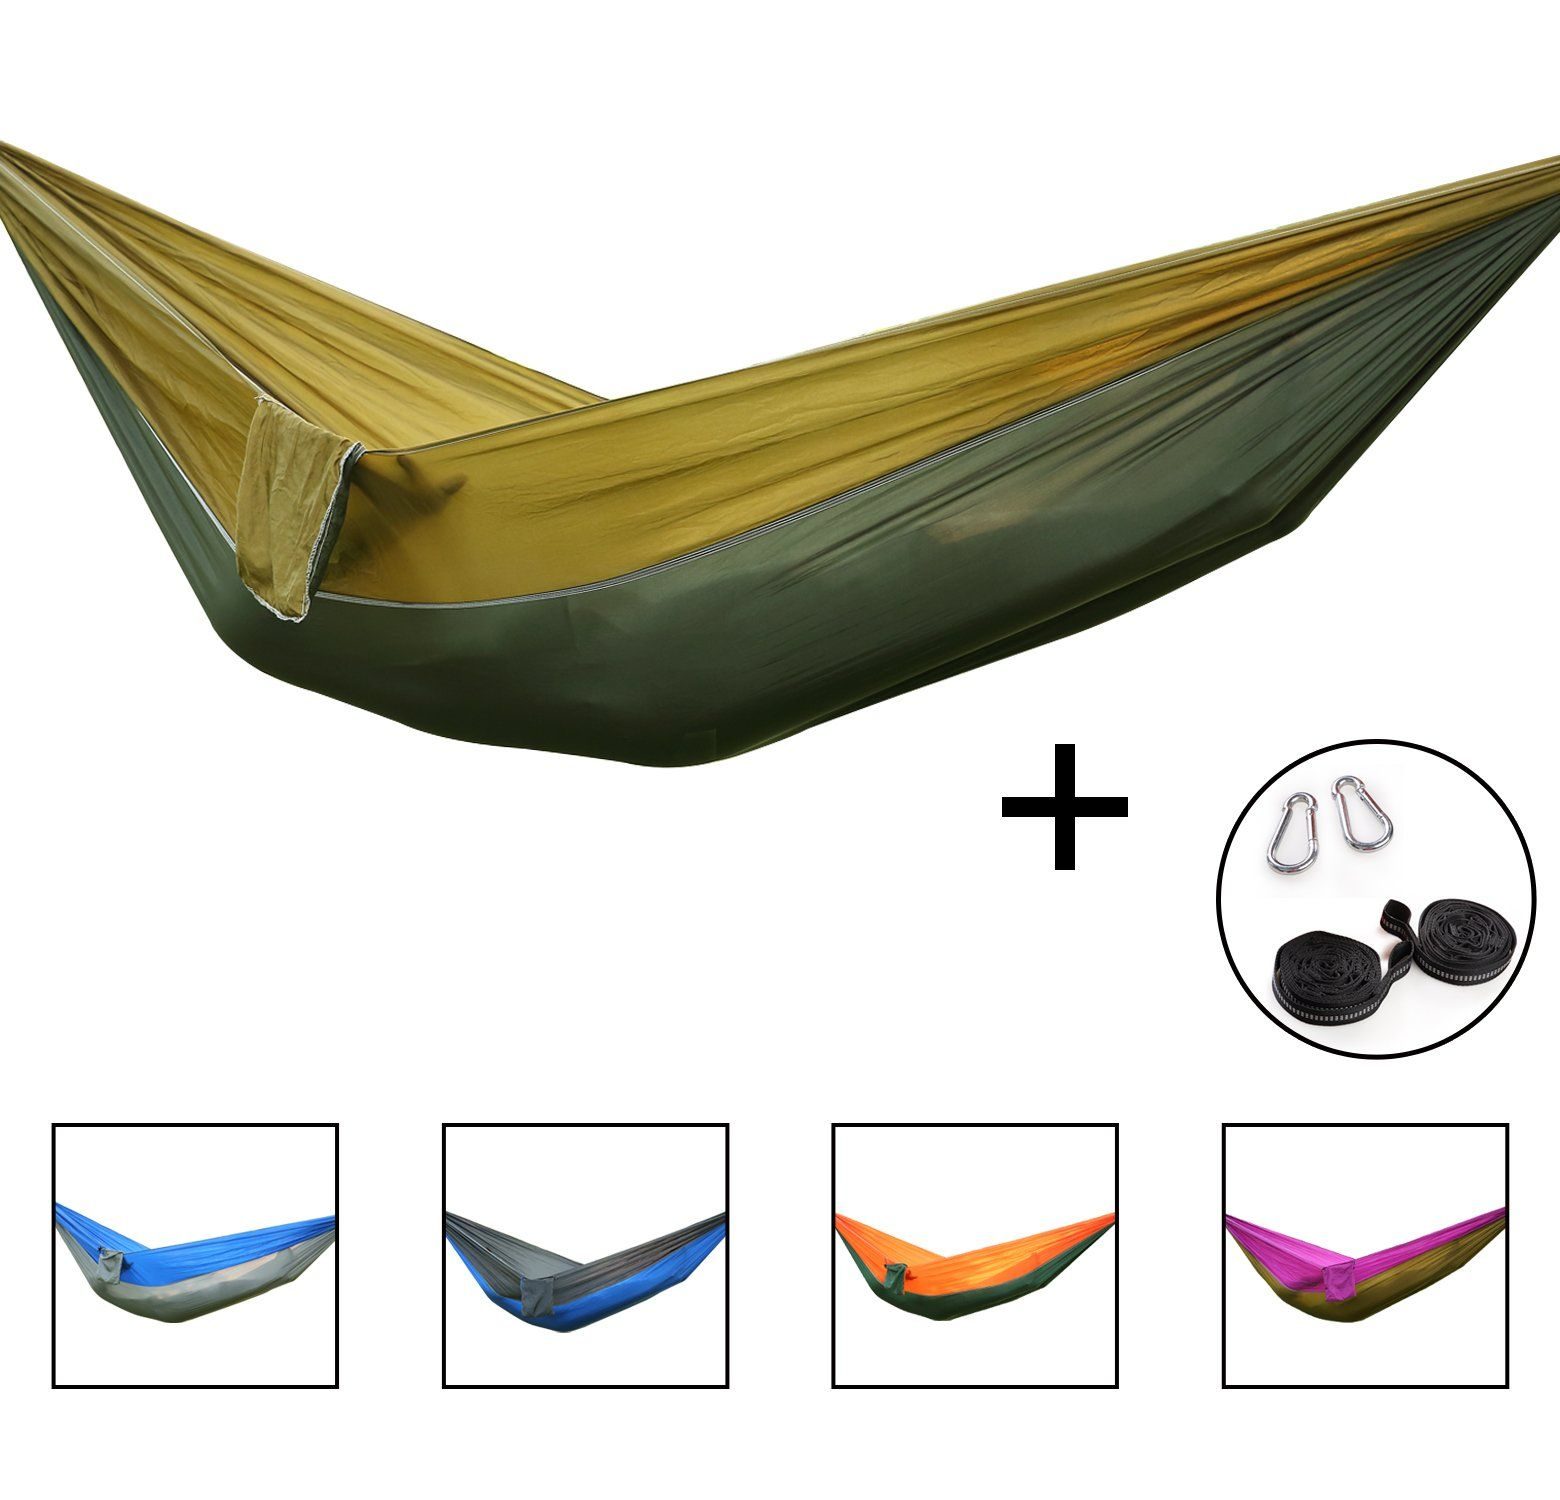 eno pin hammock holds and backyard wood stand that swing lbs solopod